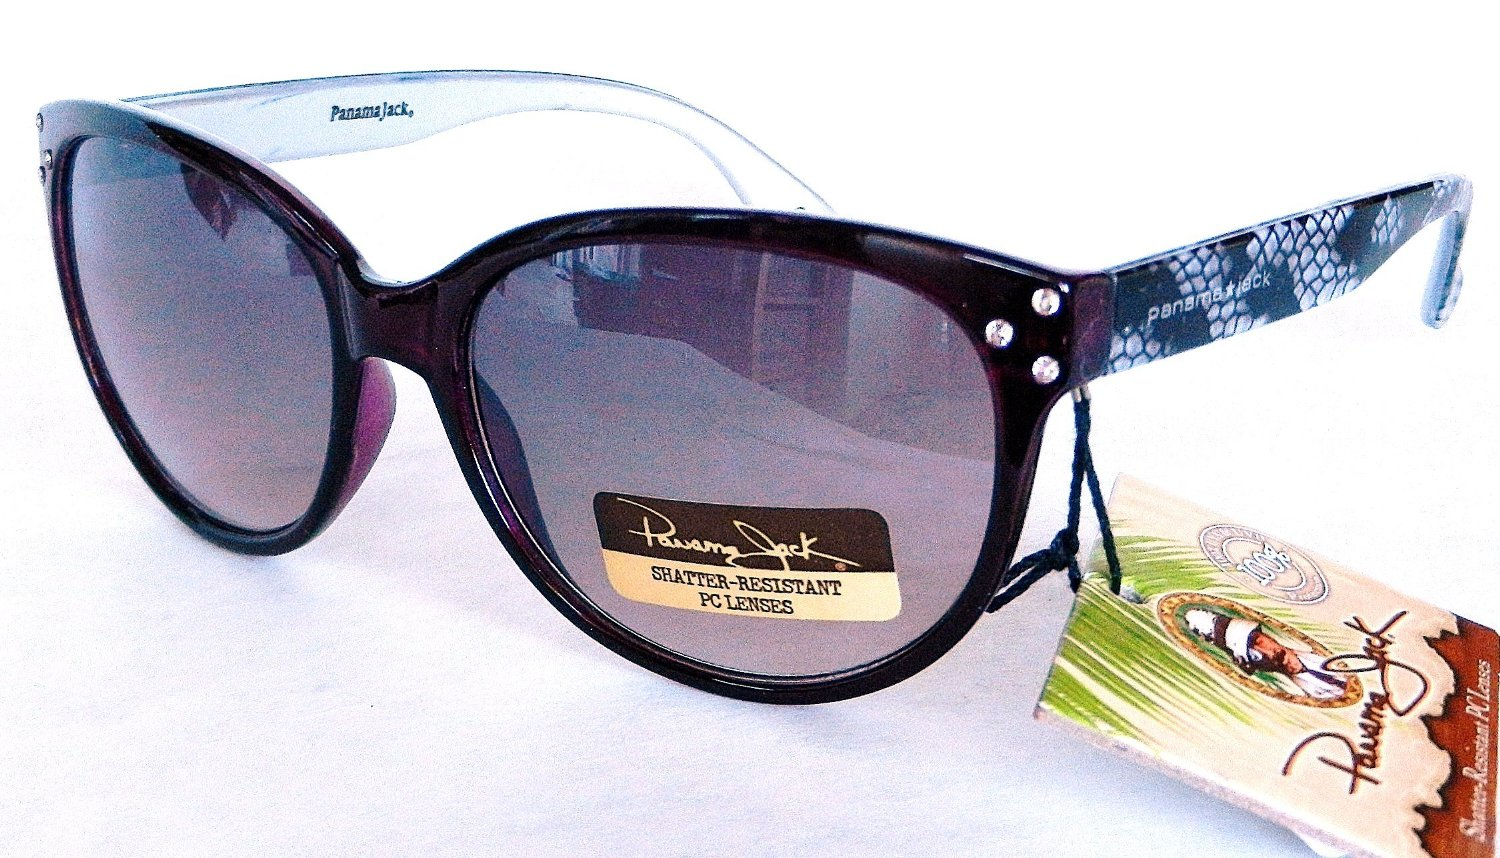 Cool Panama Jack Sunglasses